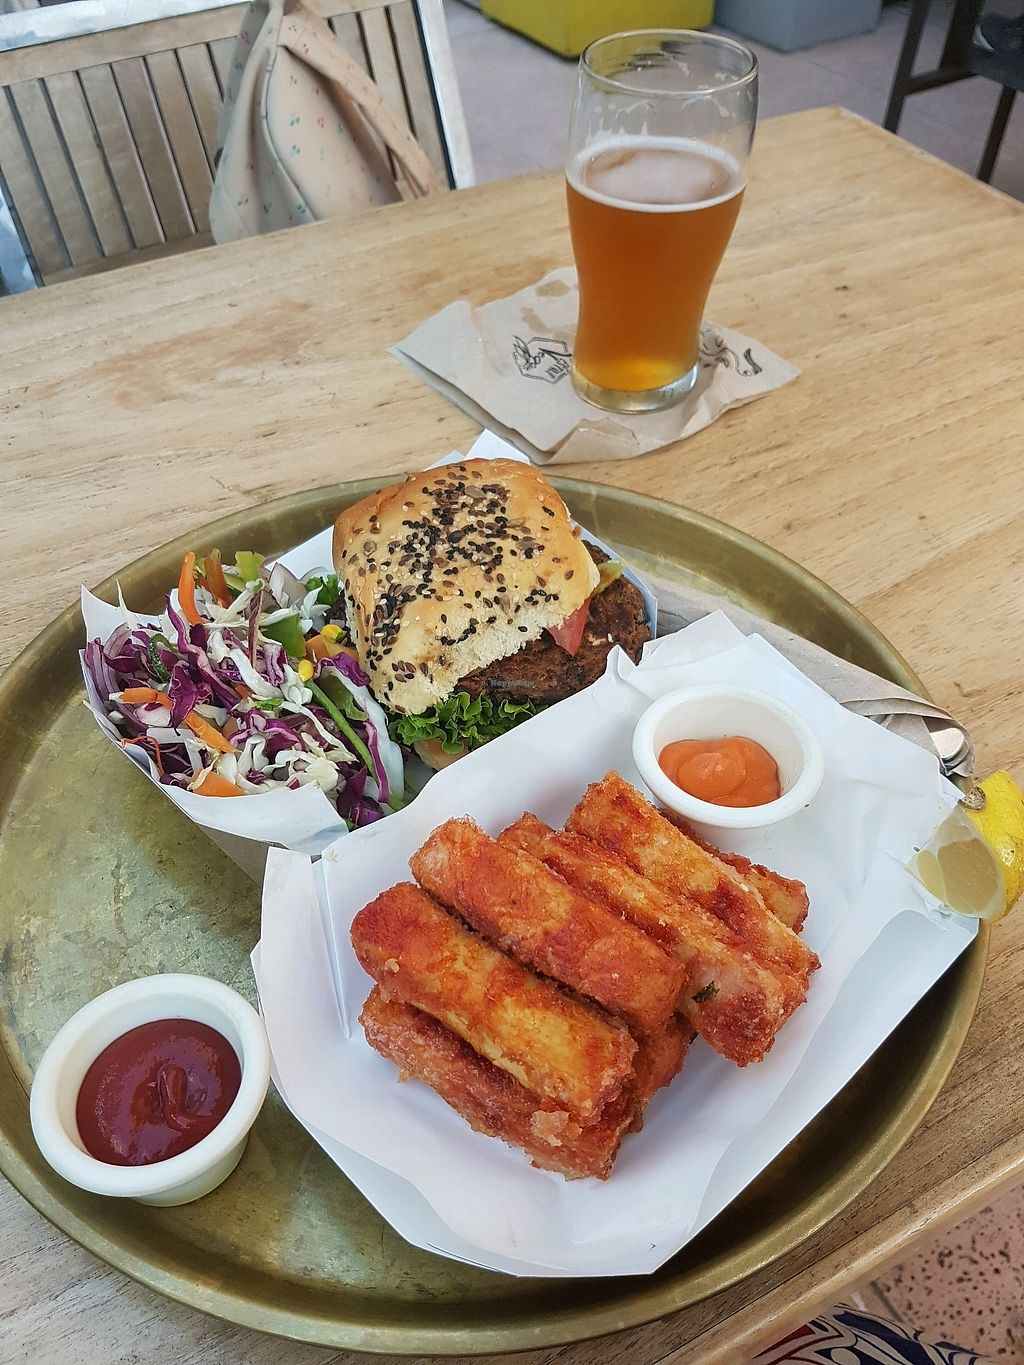 """Photo of Estilo Veggie  by <a href=""""/members/profile/Olena"""">Olena</a> <br/>tofu wings and burger  <br/> April 12, 2018  - <a href='/contact/abuse/image/96764/384664'>Report</a>"""